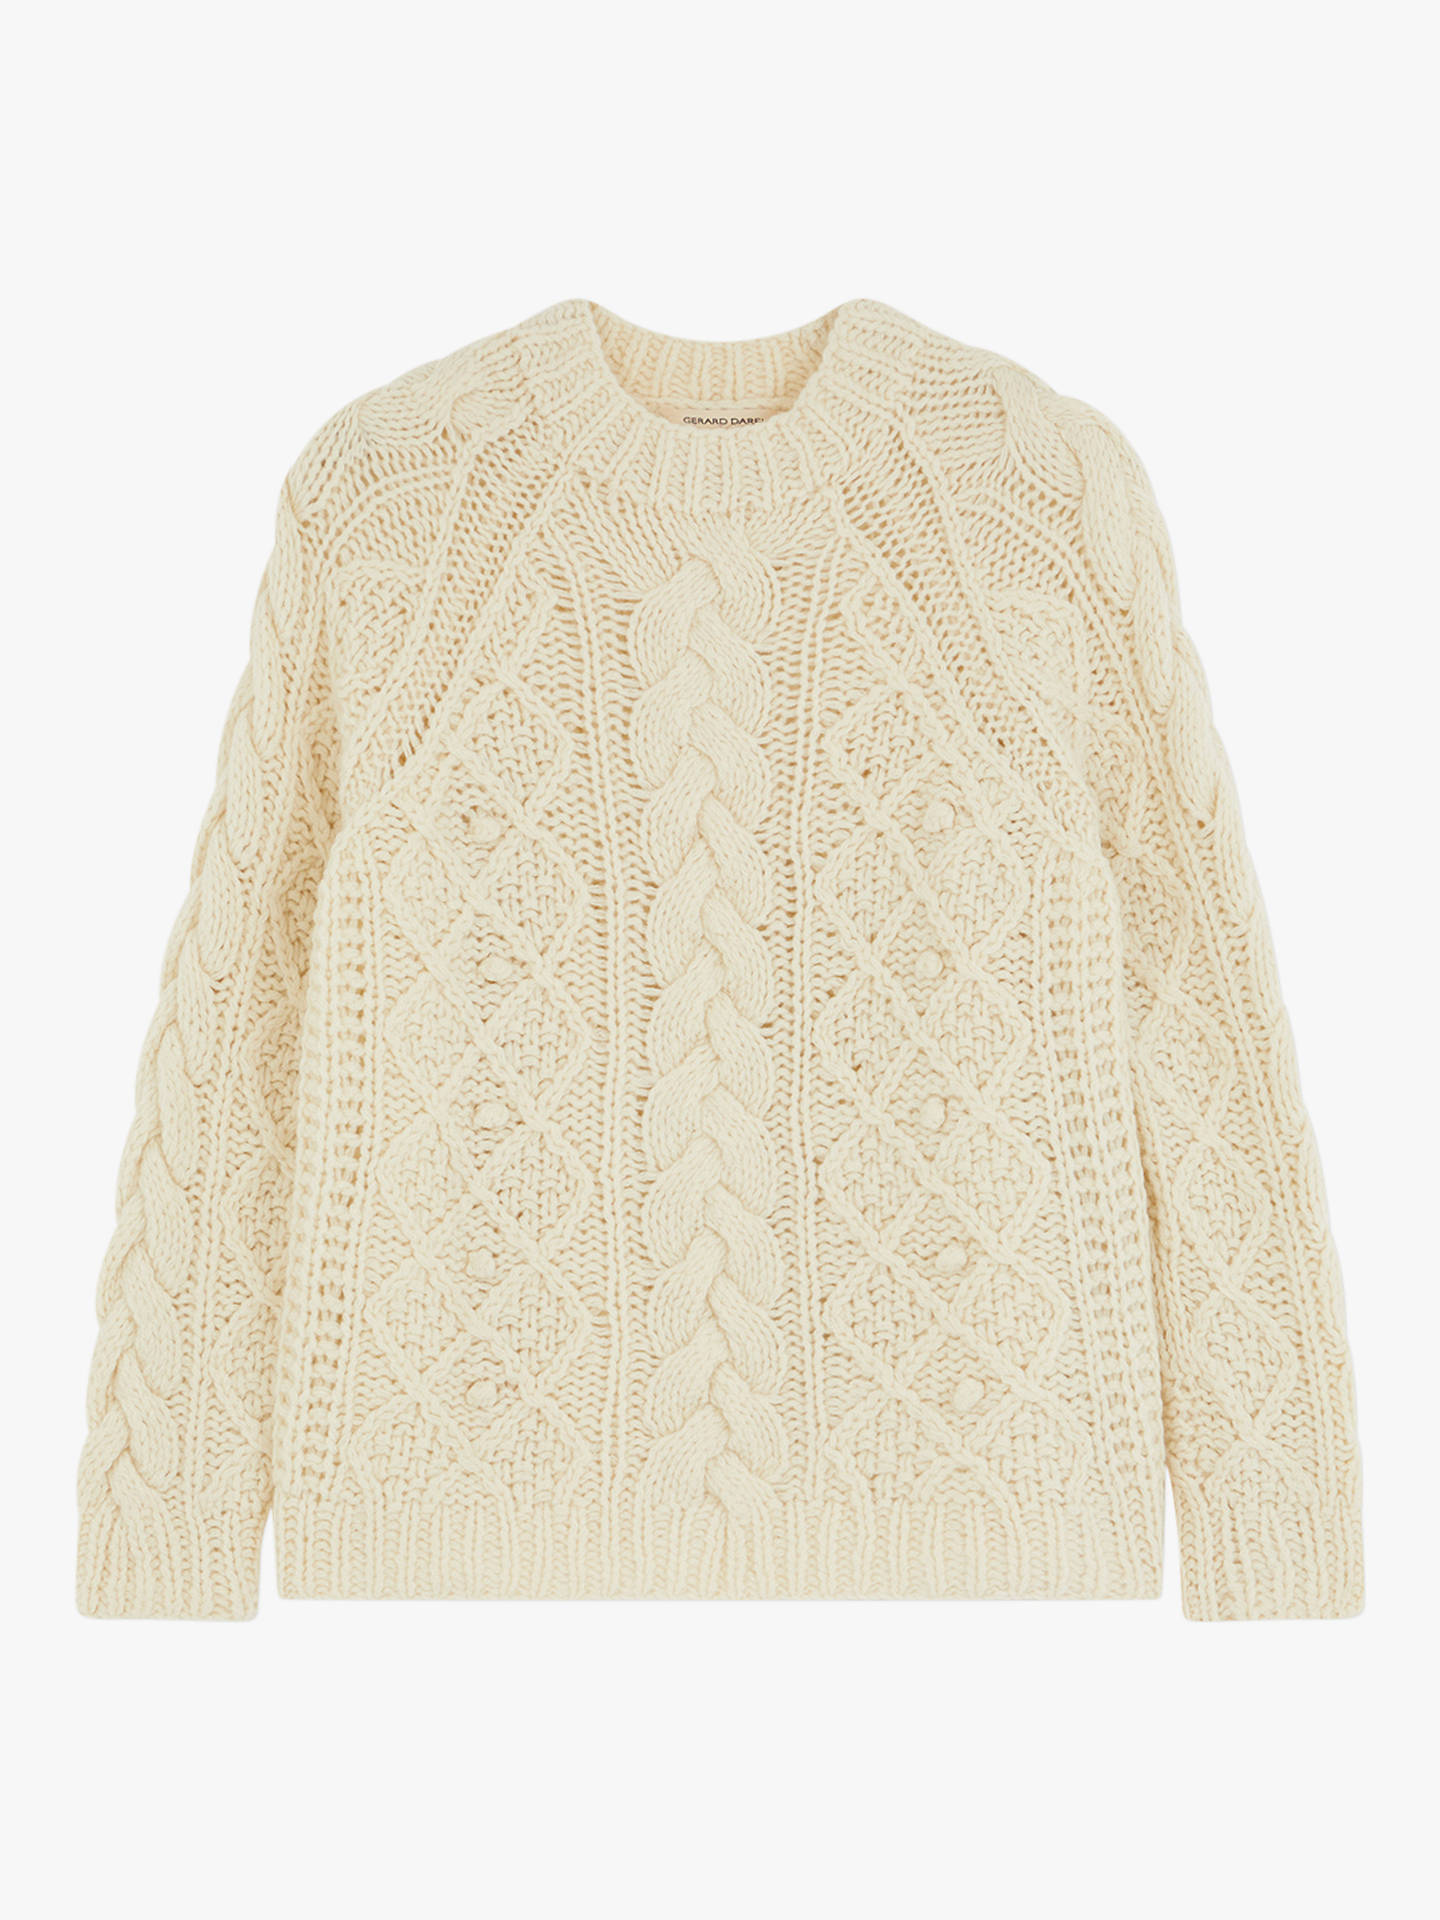 BuyGerard Darel Marylin Cable Knit Jumper, White, 8-10 Online at johnlewis.com